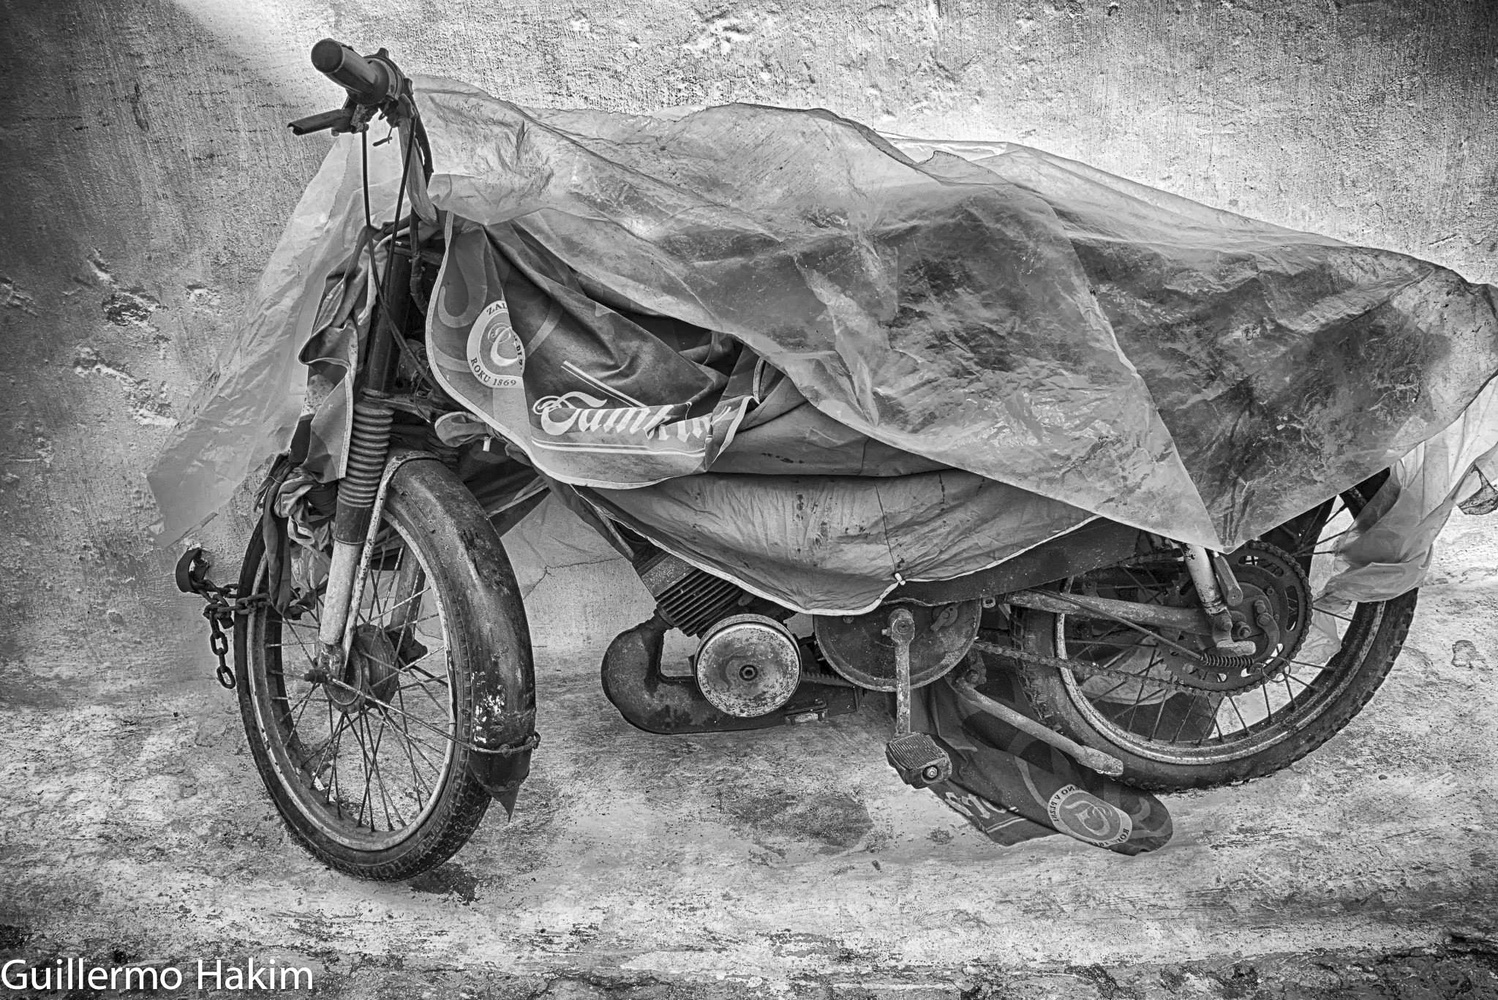 Motorcycle by Guillermo Hakim